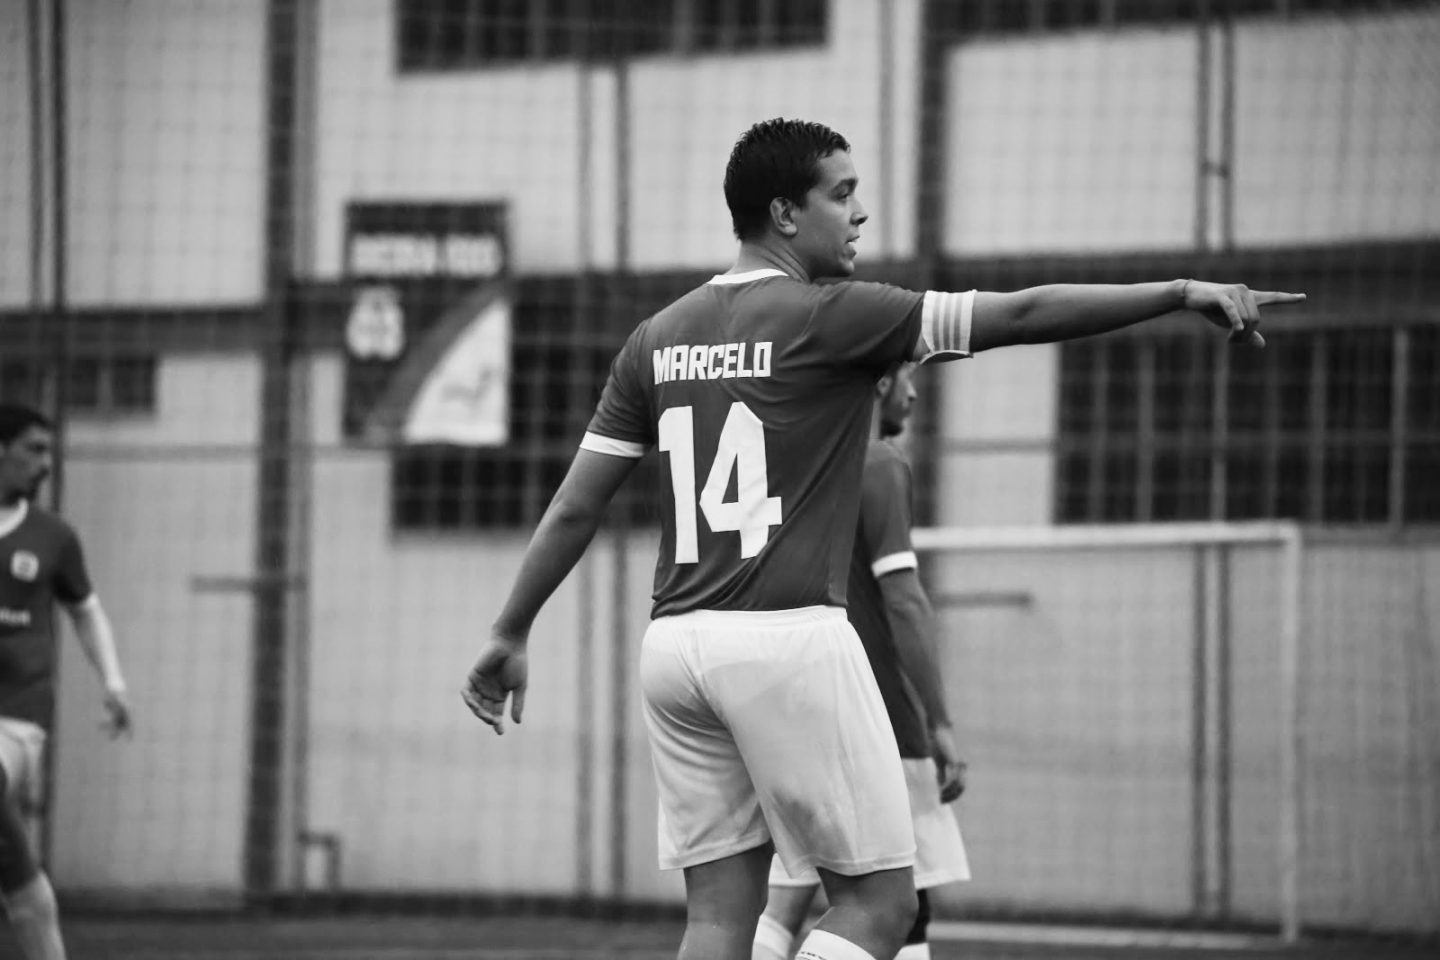 Marcelo Leite during an indoor soccer game pointing at something   Fear of change